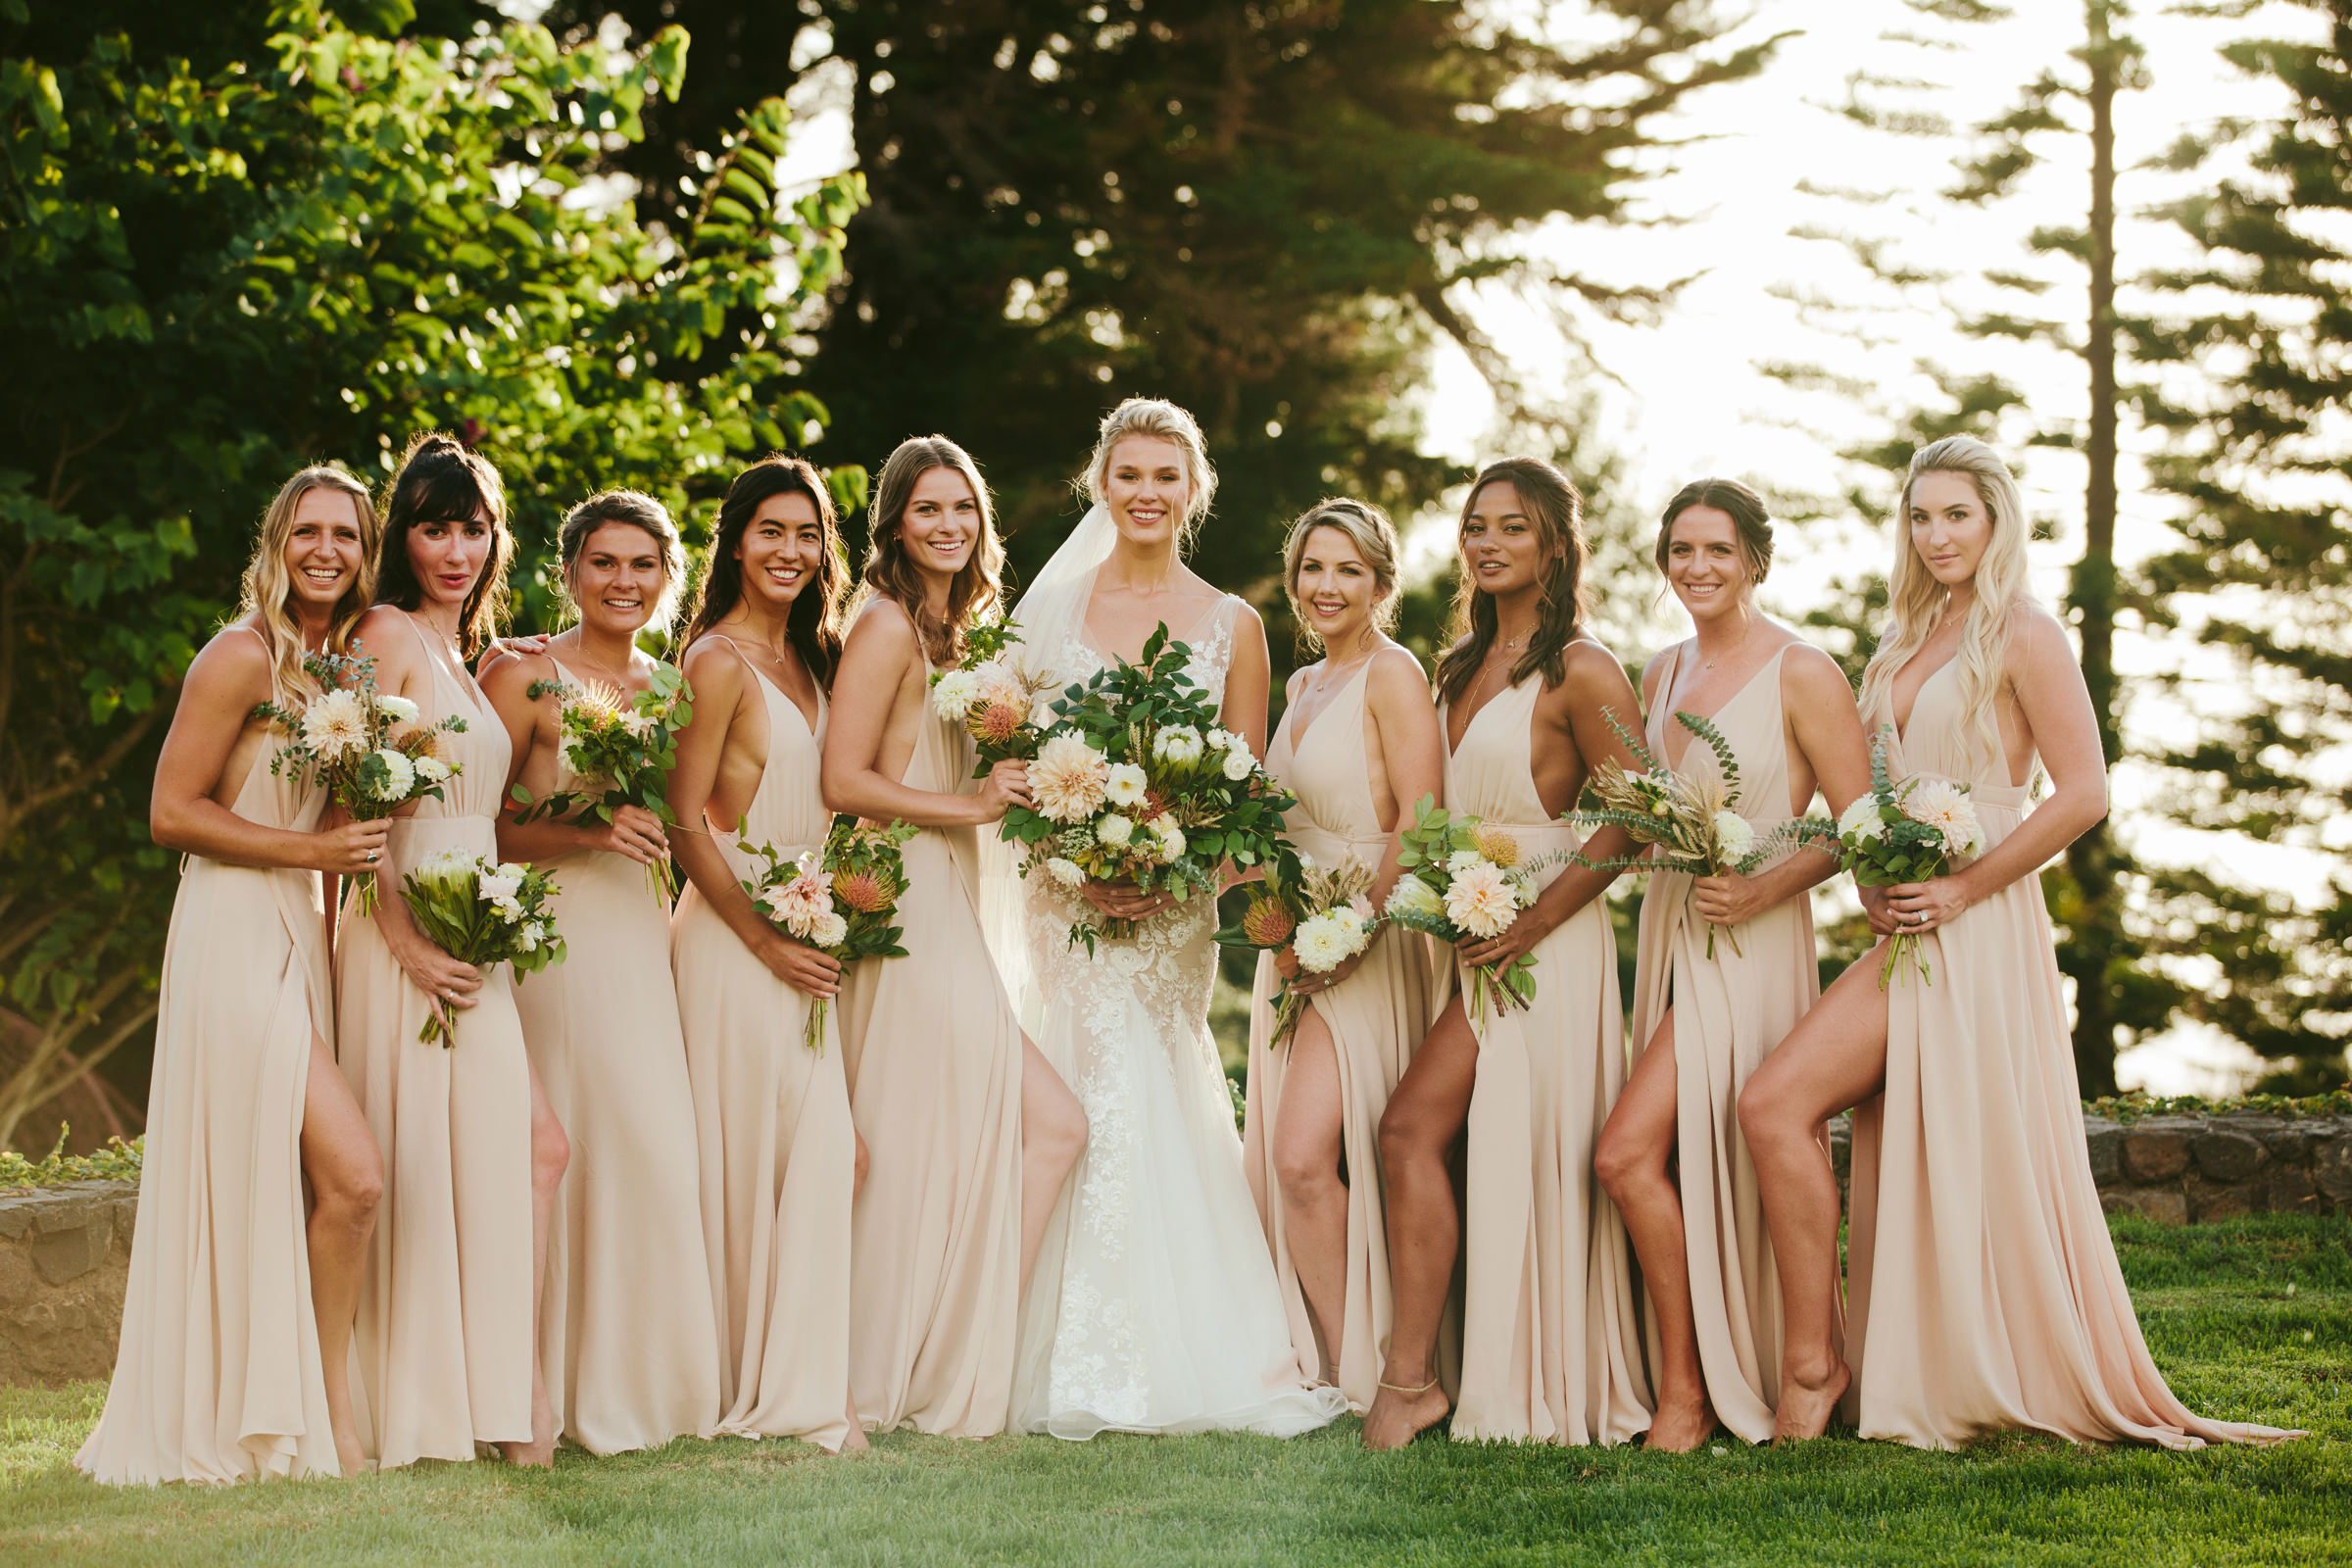 Maui bride with bridesmaids - photo by Melia Lucida